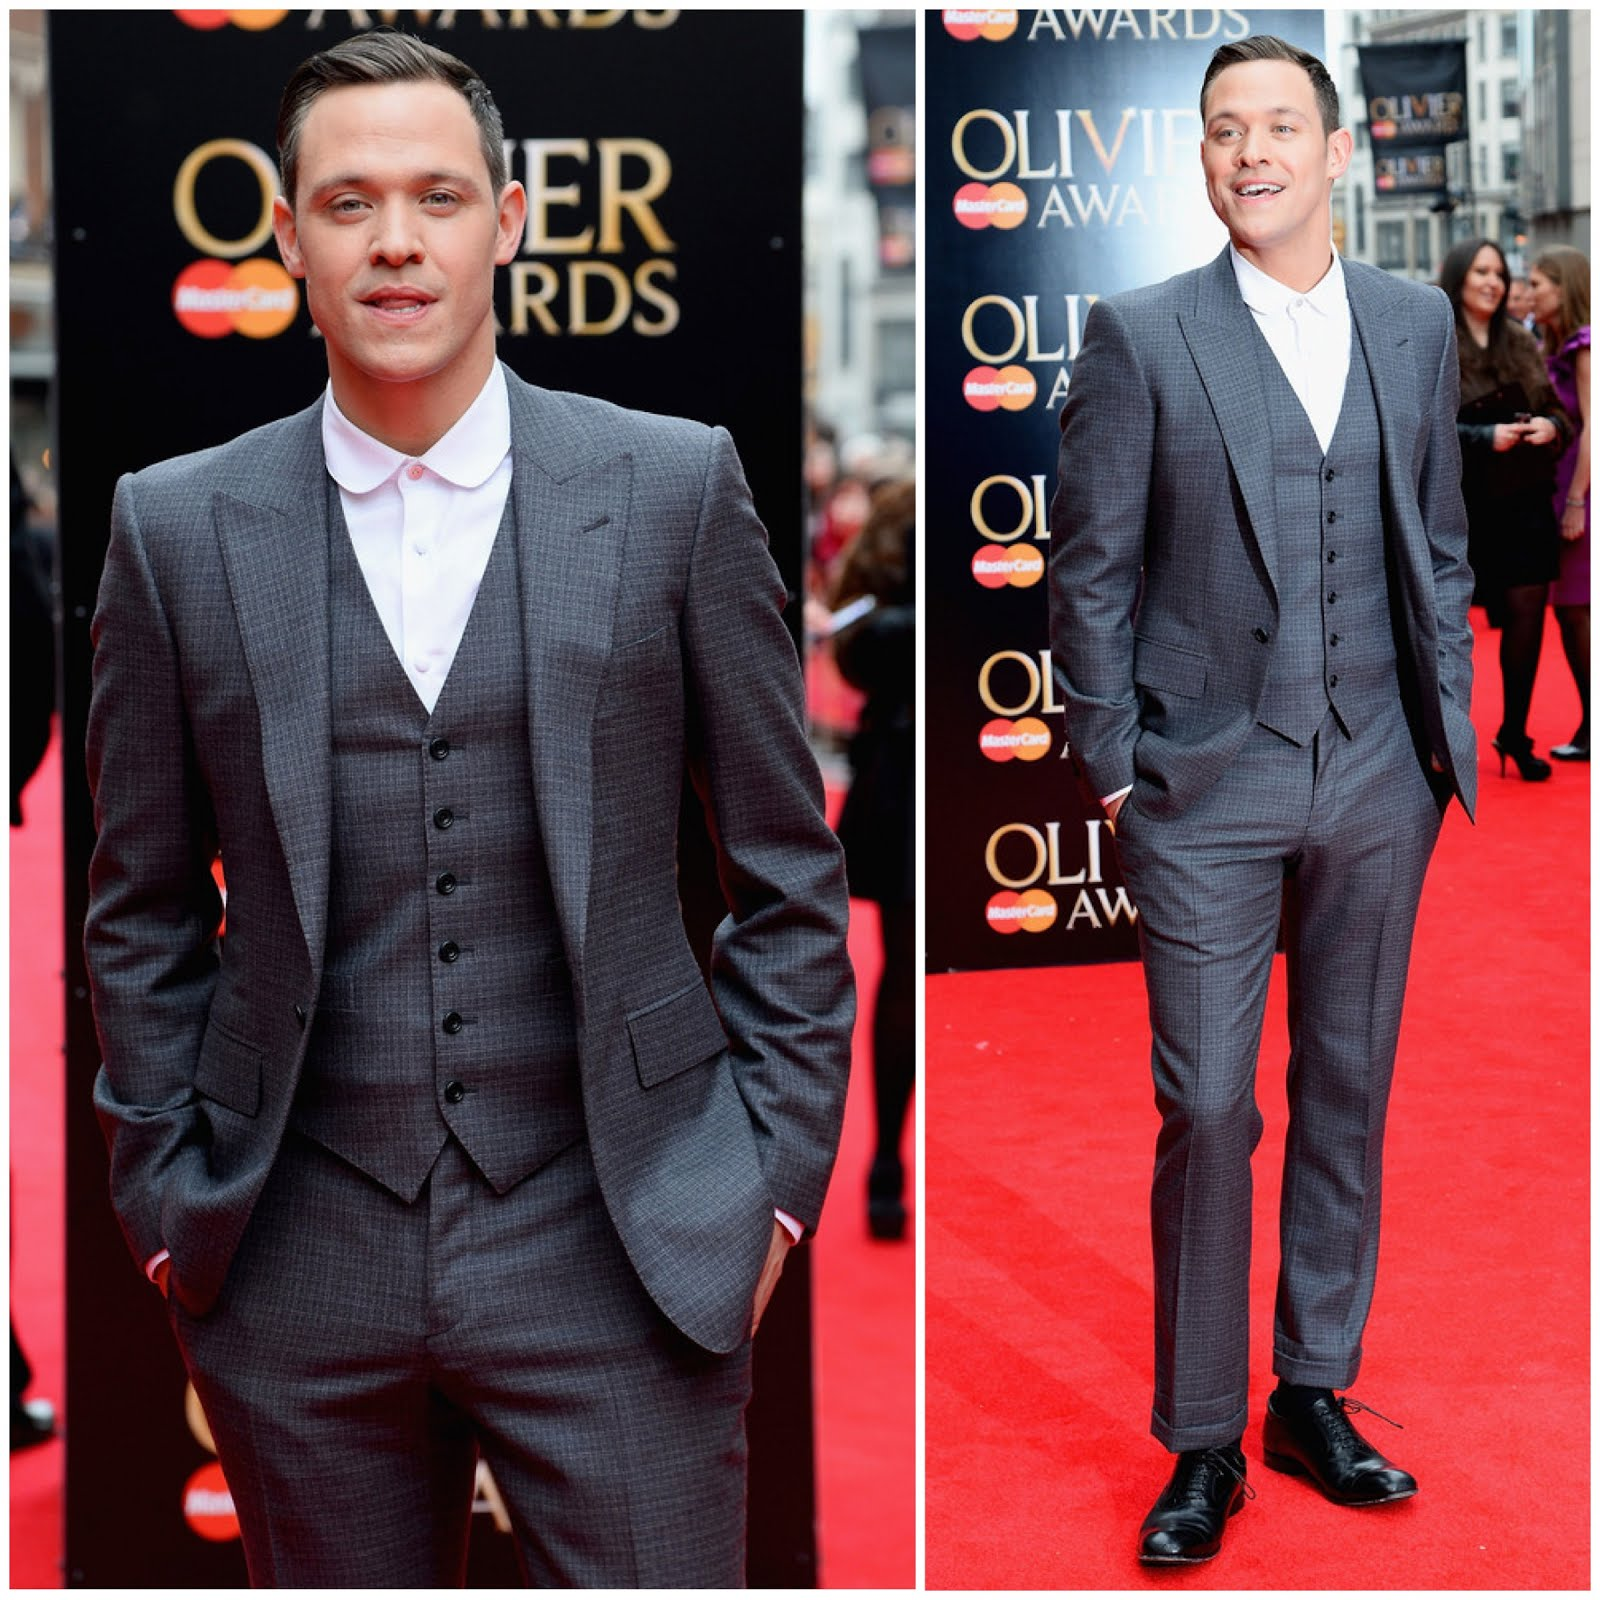 00O00 Menswear Blog: Will Young in Hardy Amies Fall Winter 2013 - 2013 Lawrence Olivier Awards April 2013